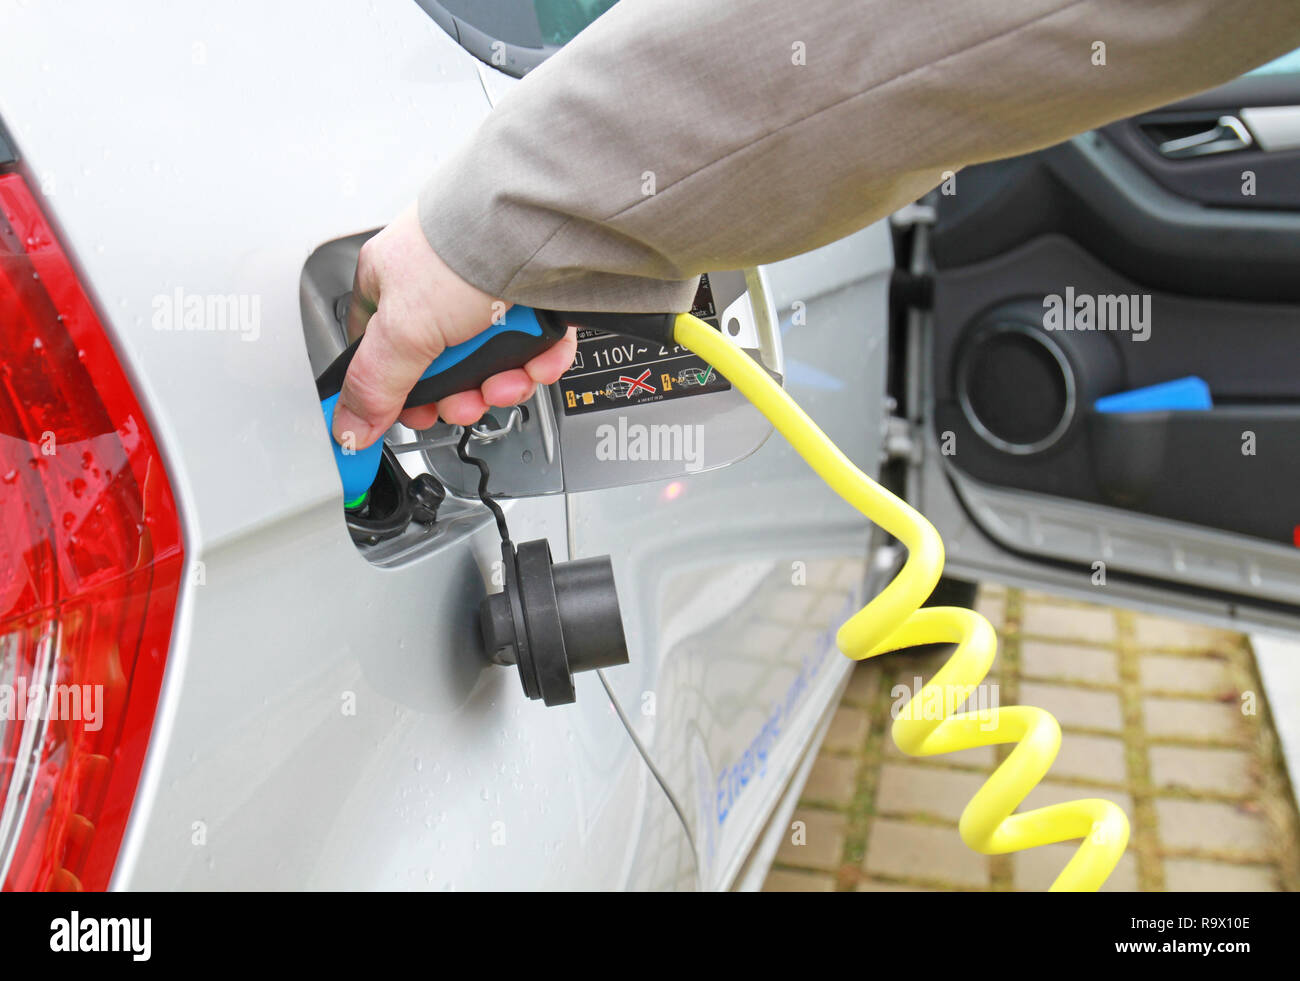 recharge an electric car - Stock Image